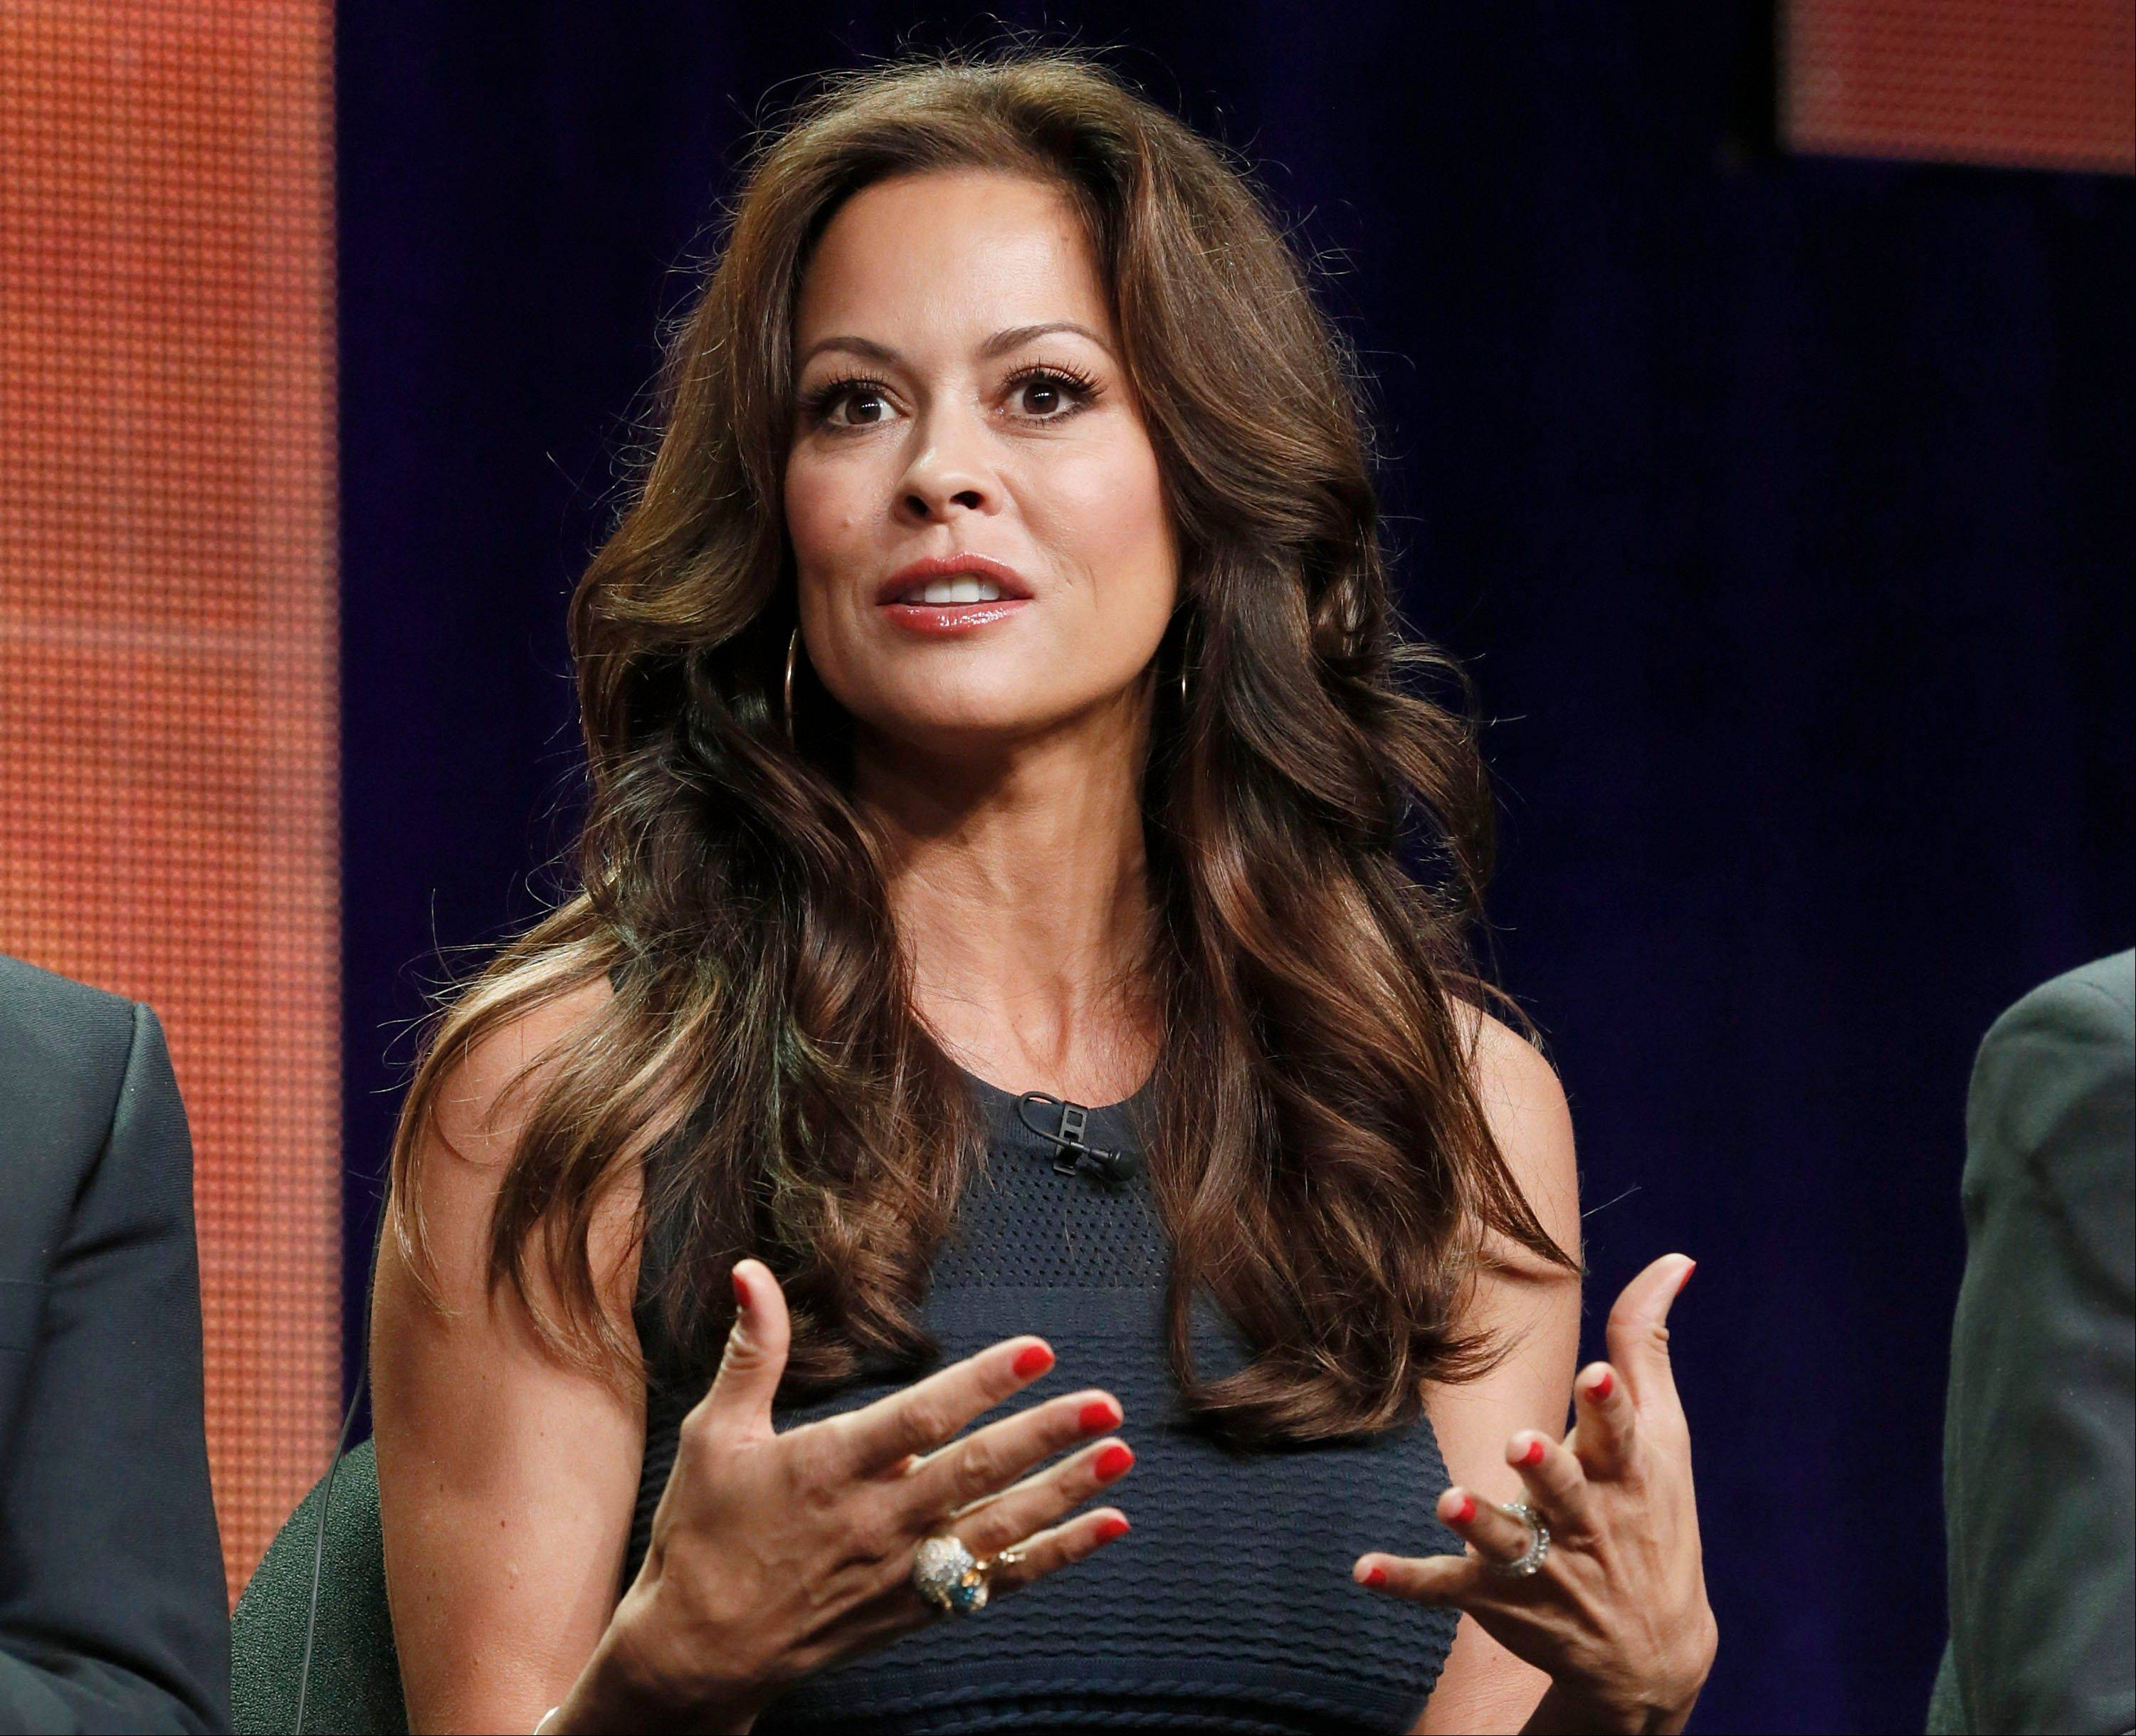 Brooke Burke posted a video message on YouTube disclosing that she has thyroid cancer. She plans to have surgery to remove her thyroid.